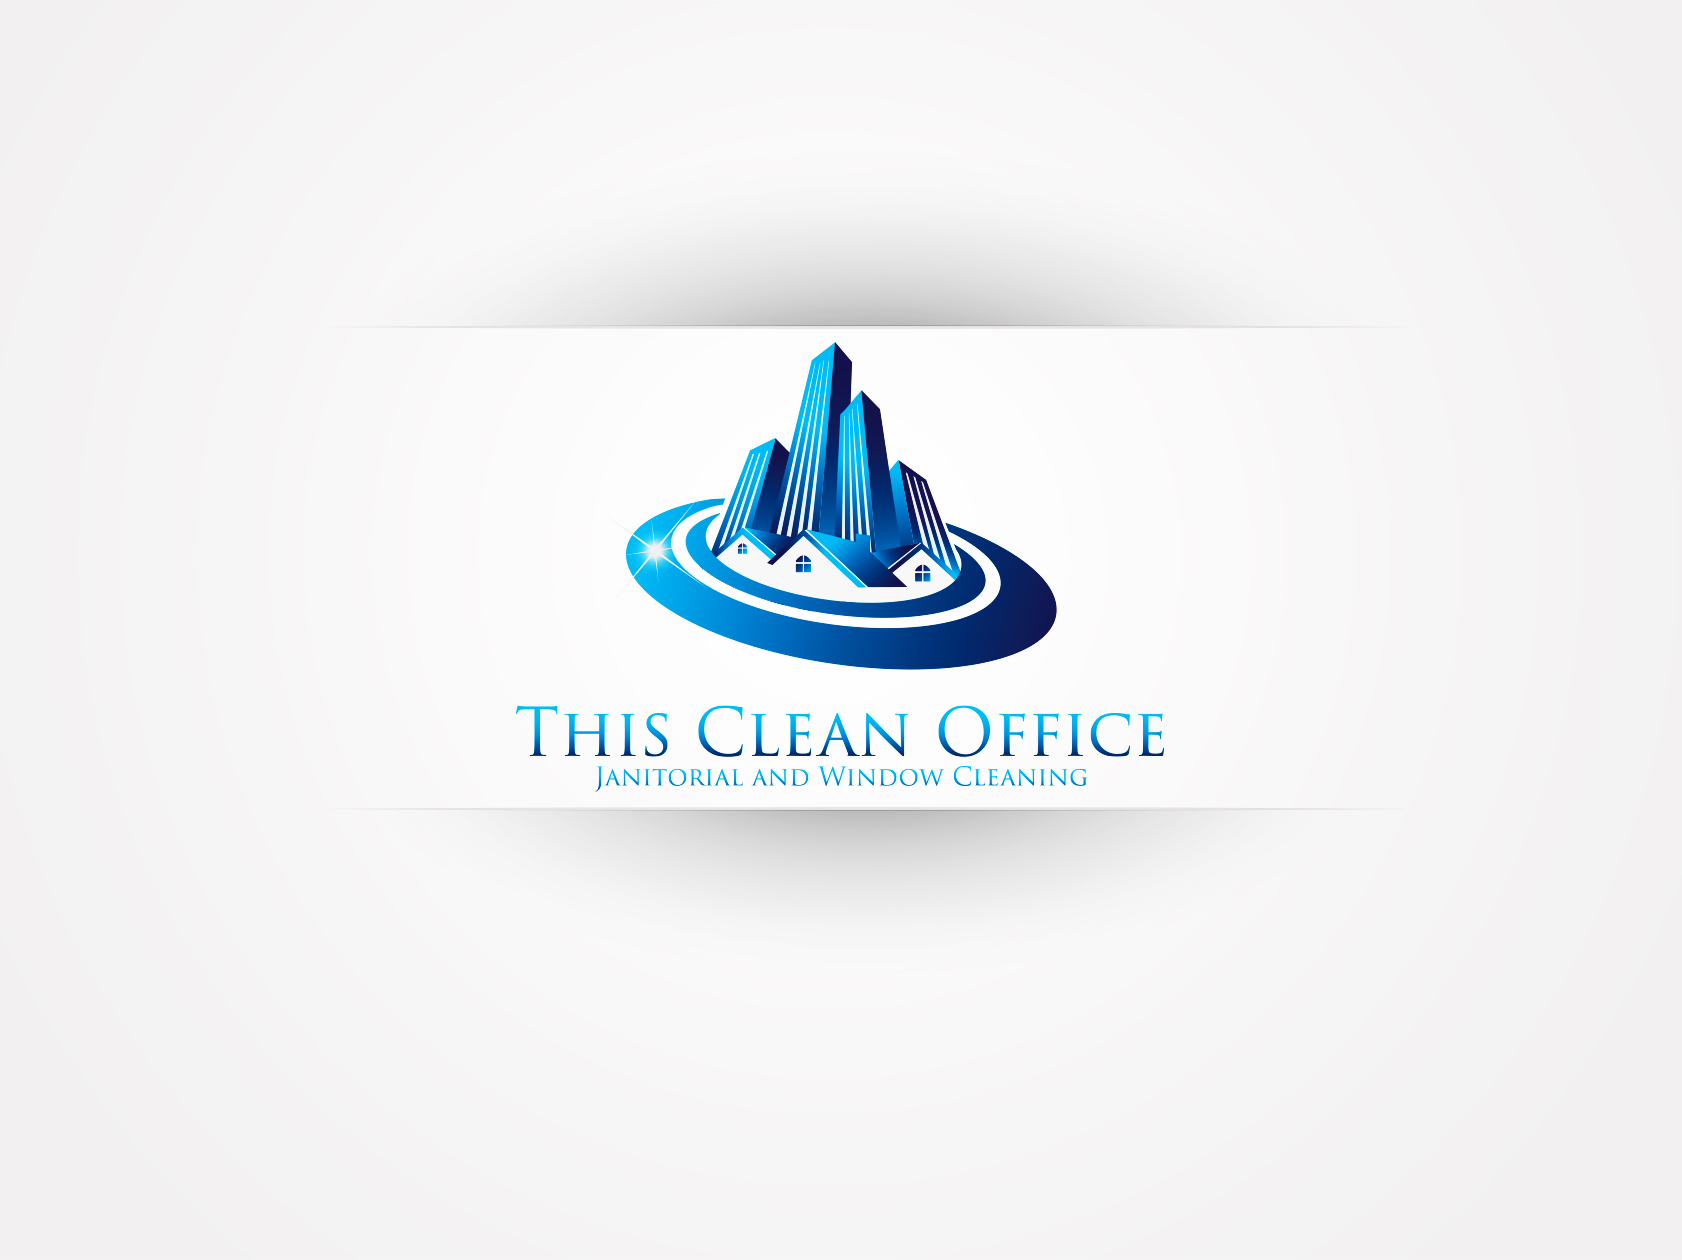 Logo Design by OmegaDesigns - Entry No. 56 in the Logo Design Contest Professional and Unforgettable Logo Design for This Clean Office.